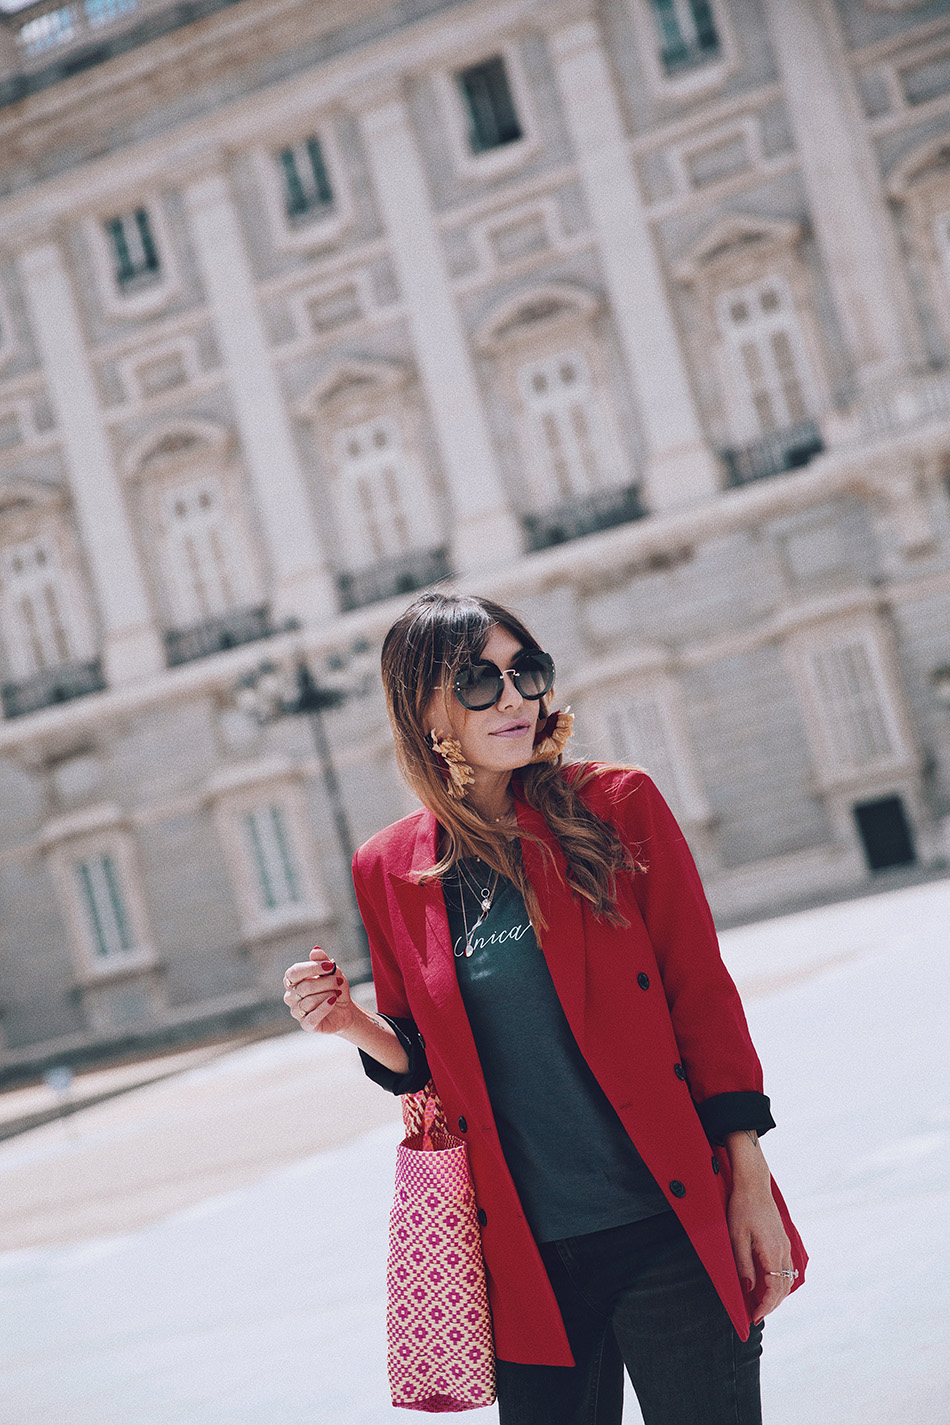 Bárbara Crespo streetstyle. Red blazer. T-shirt / Camiseta: Tees and Dreams. Shoes  / Zapatos: Zara. Sun Glasses / Gafas de sol: Miu Miu. Earrings / Pendientes: Mango.